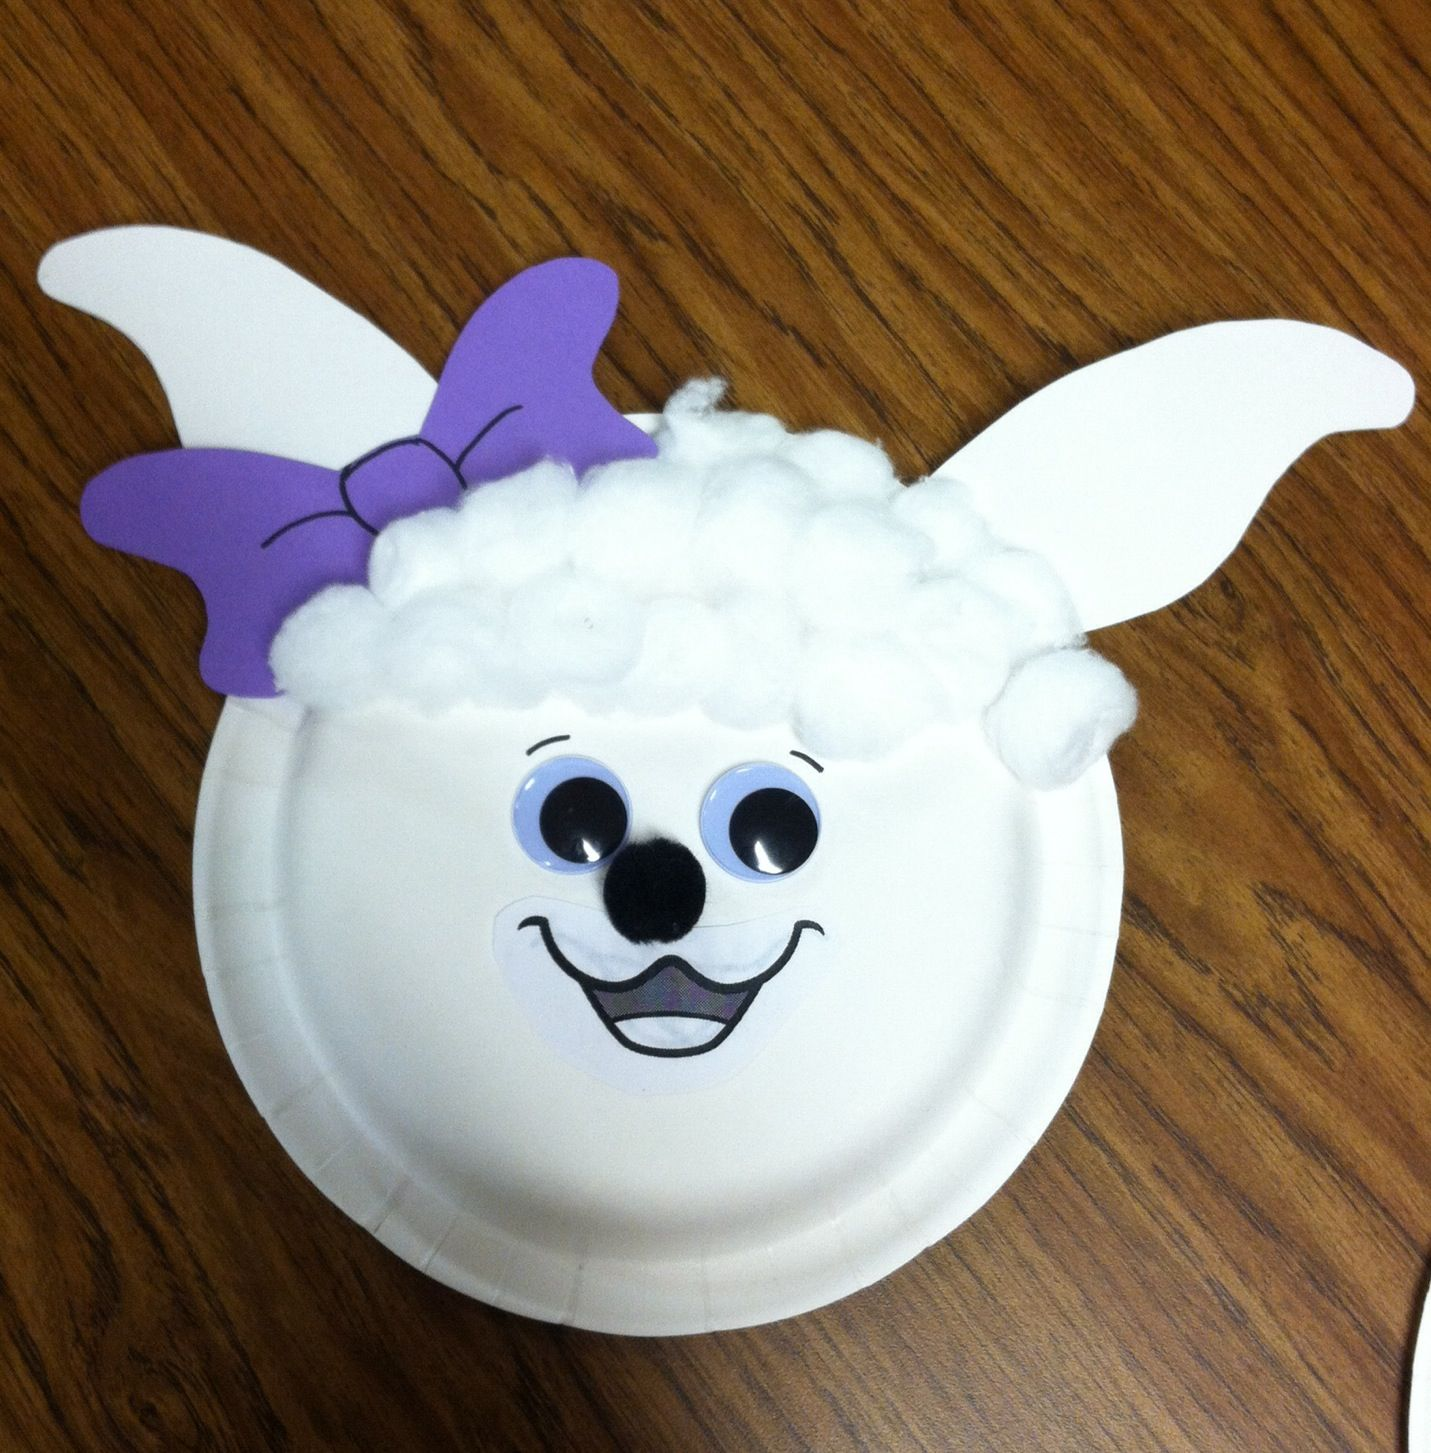 Luvie lamb paper plate craft awana cubbies pinterest paper luvie lamb paper plate craft jeuxipadfo Images